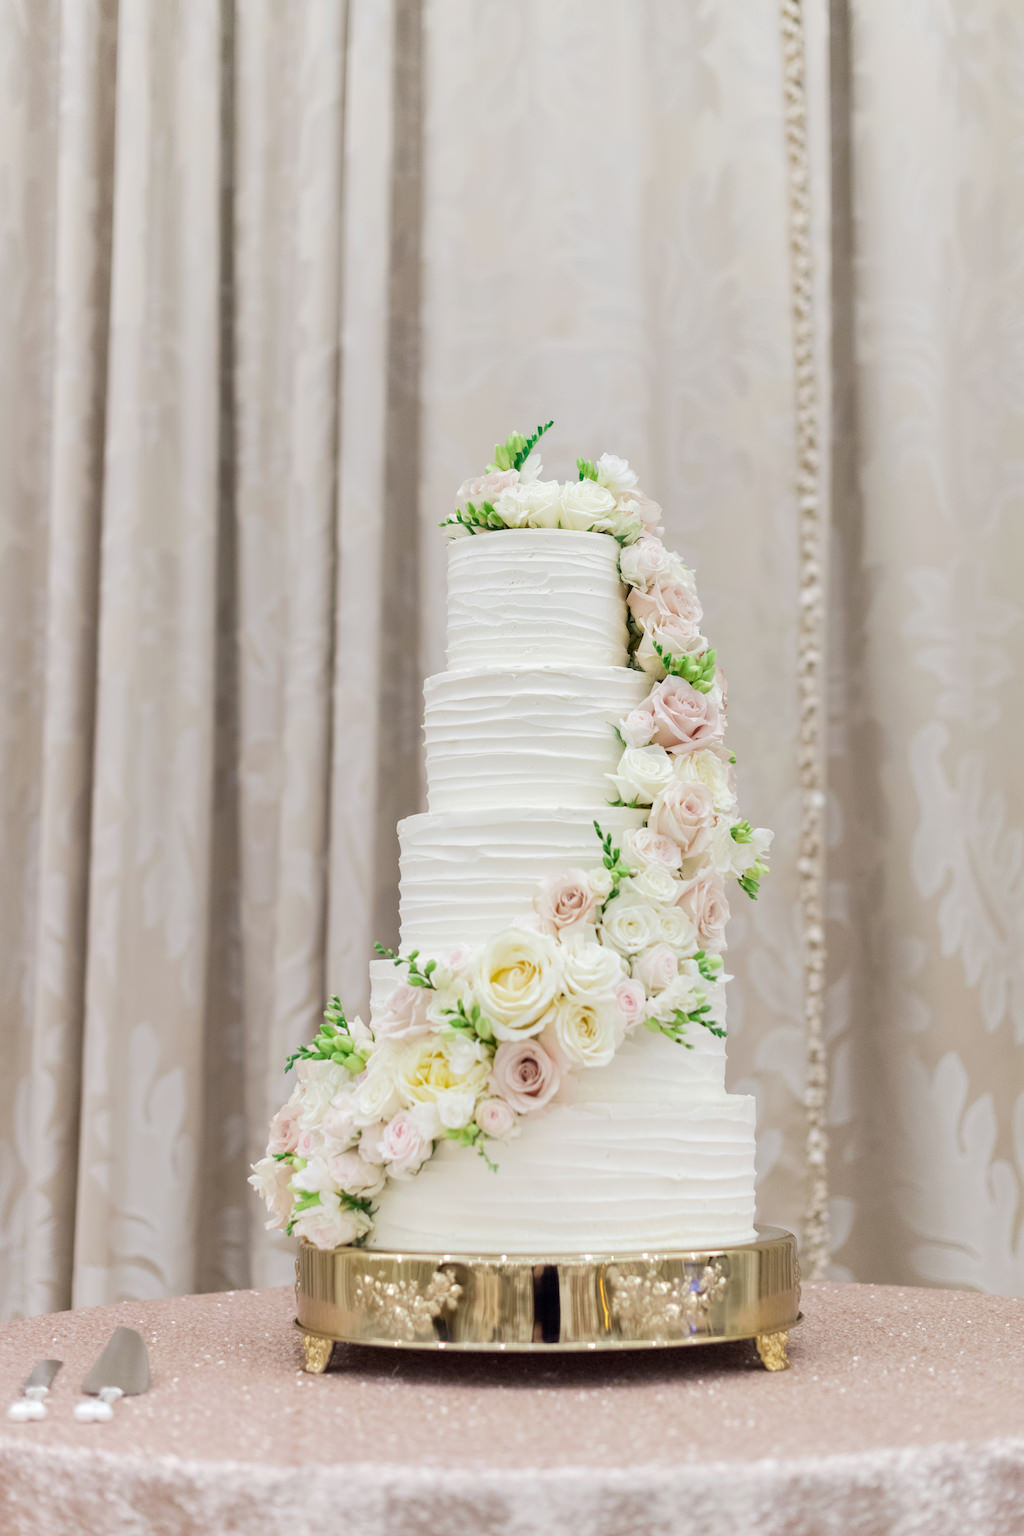 Five Tier White Ruffled Buttercream Wedding Cake With Cascading